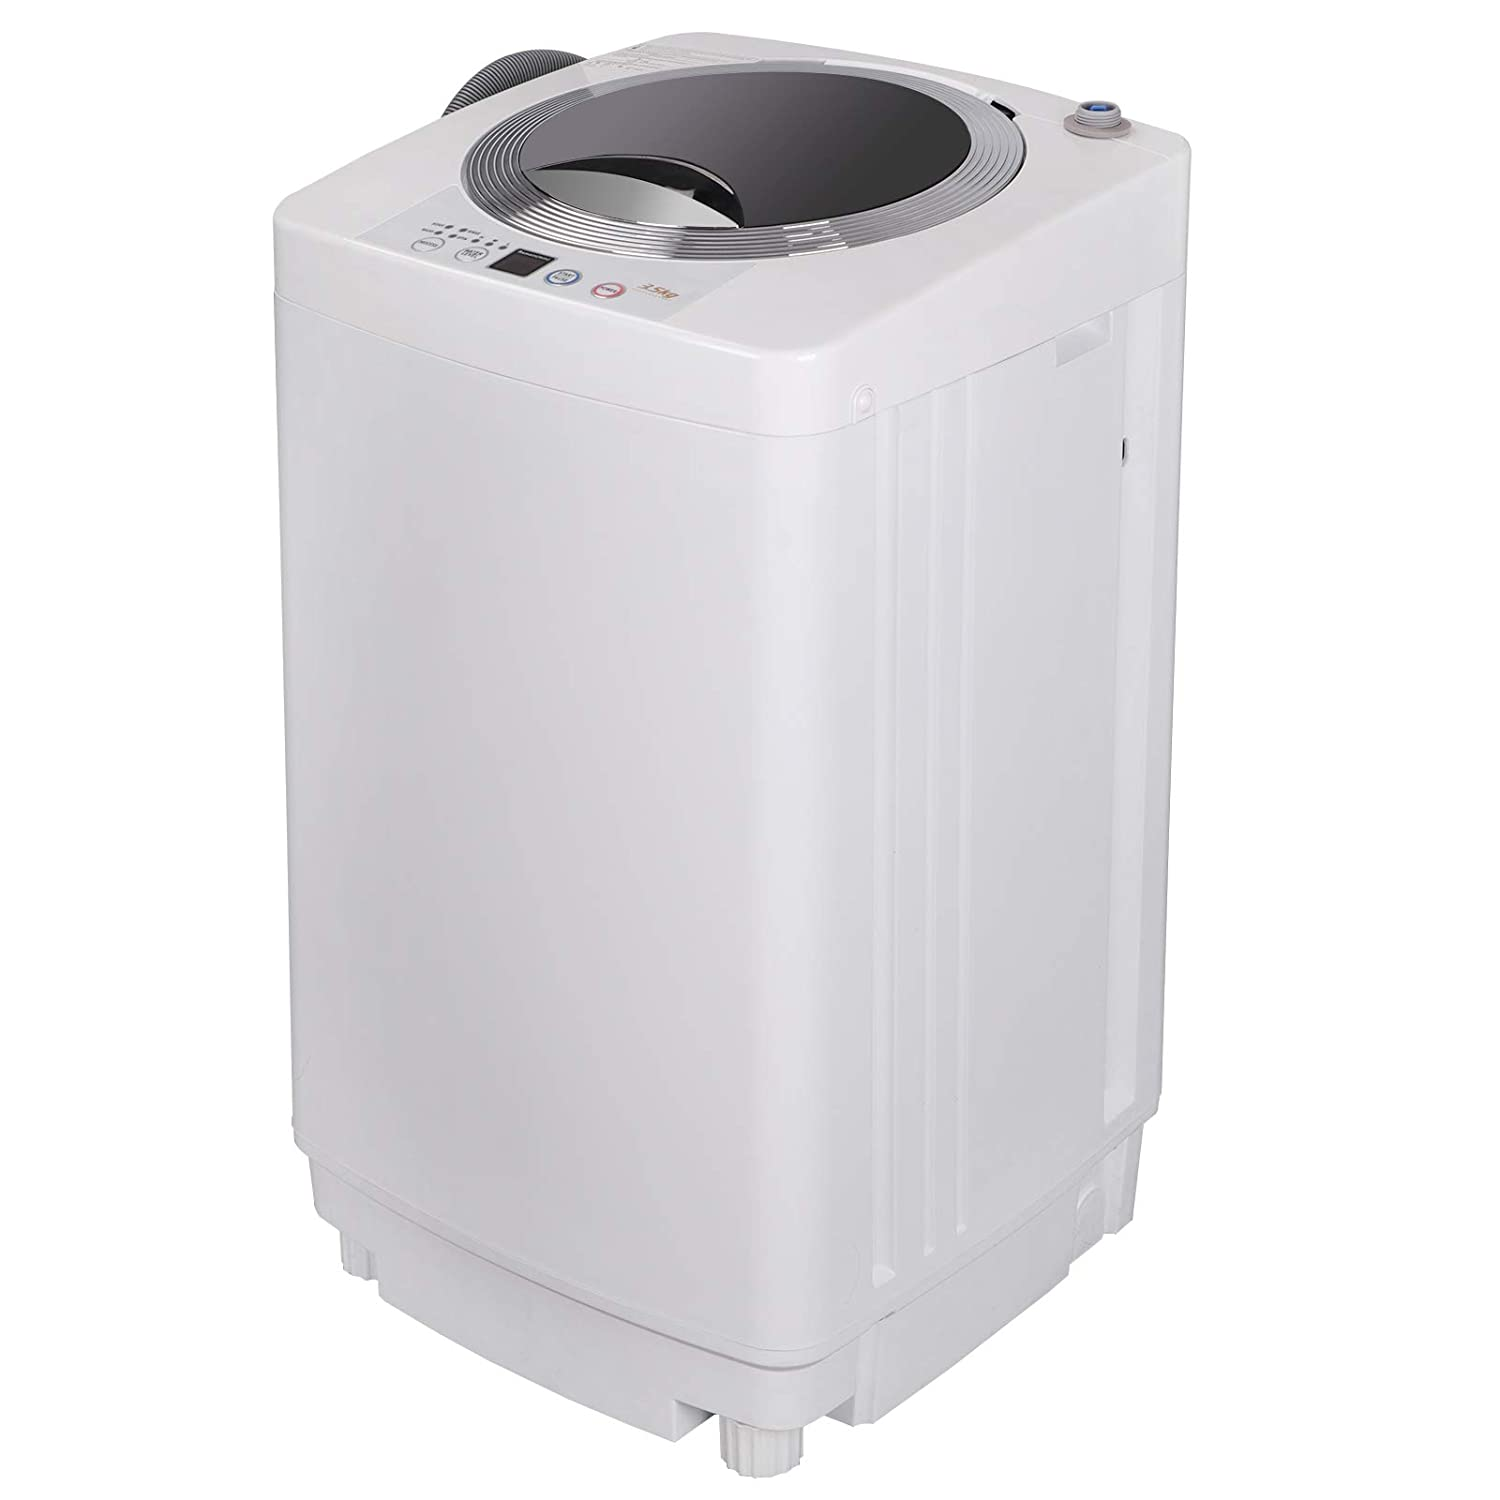 Top 10 Best Portable Washing Machines Of 2019 Campingmaniacs